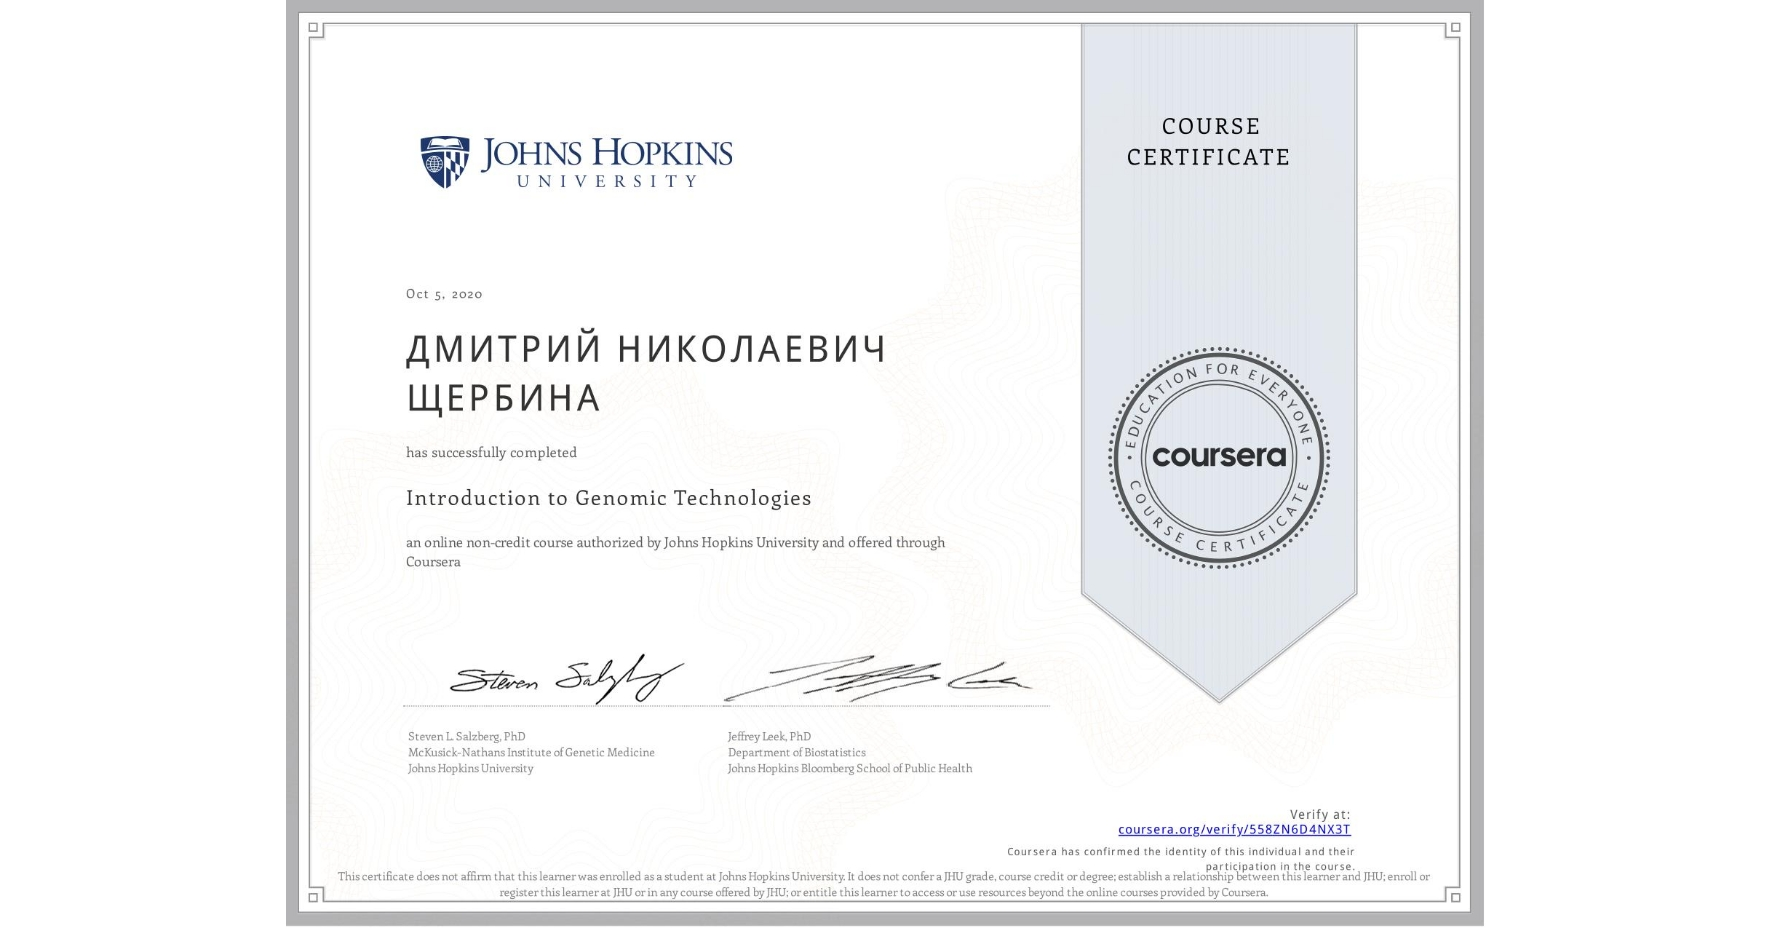 View certificate for ДМИТРИЙ НИКОЛАЕВИЧ ЩЕРБИНА, Introduction to Genomic Technologies, an online non-credit course authorized by Johns Hopkins University and offered through Coursera